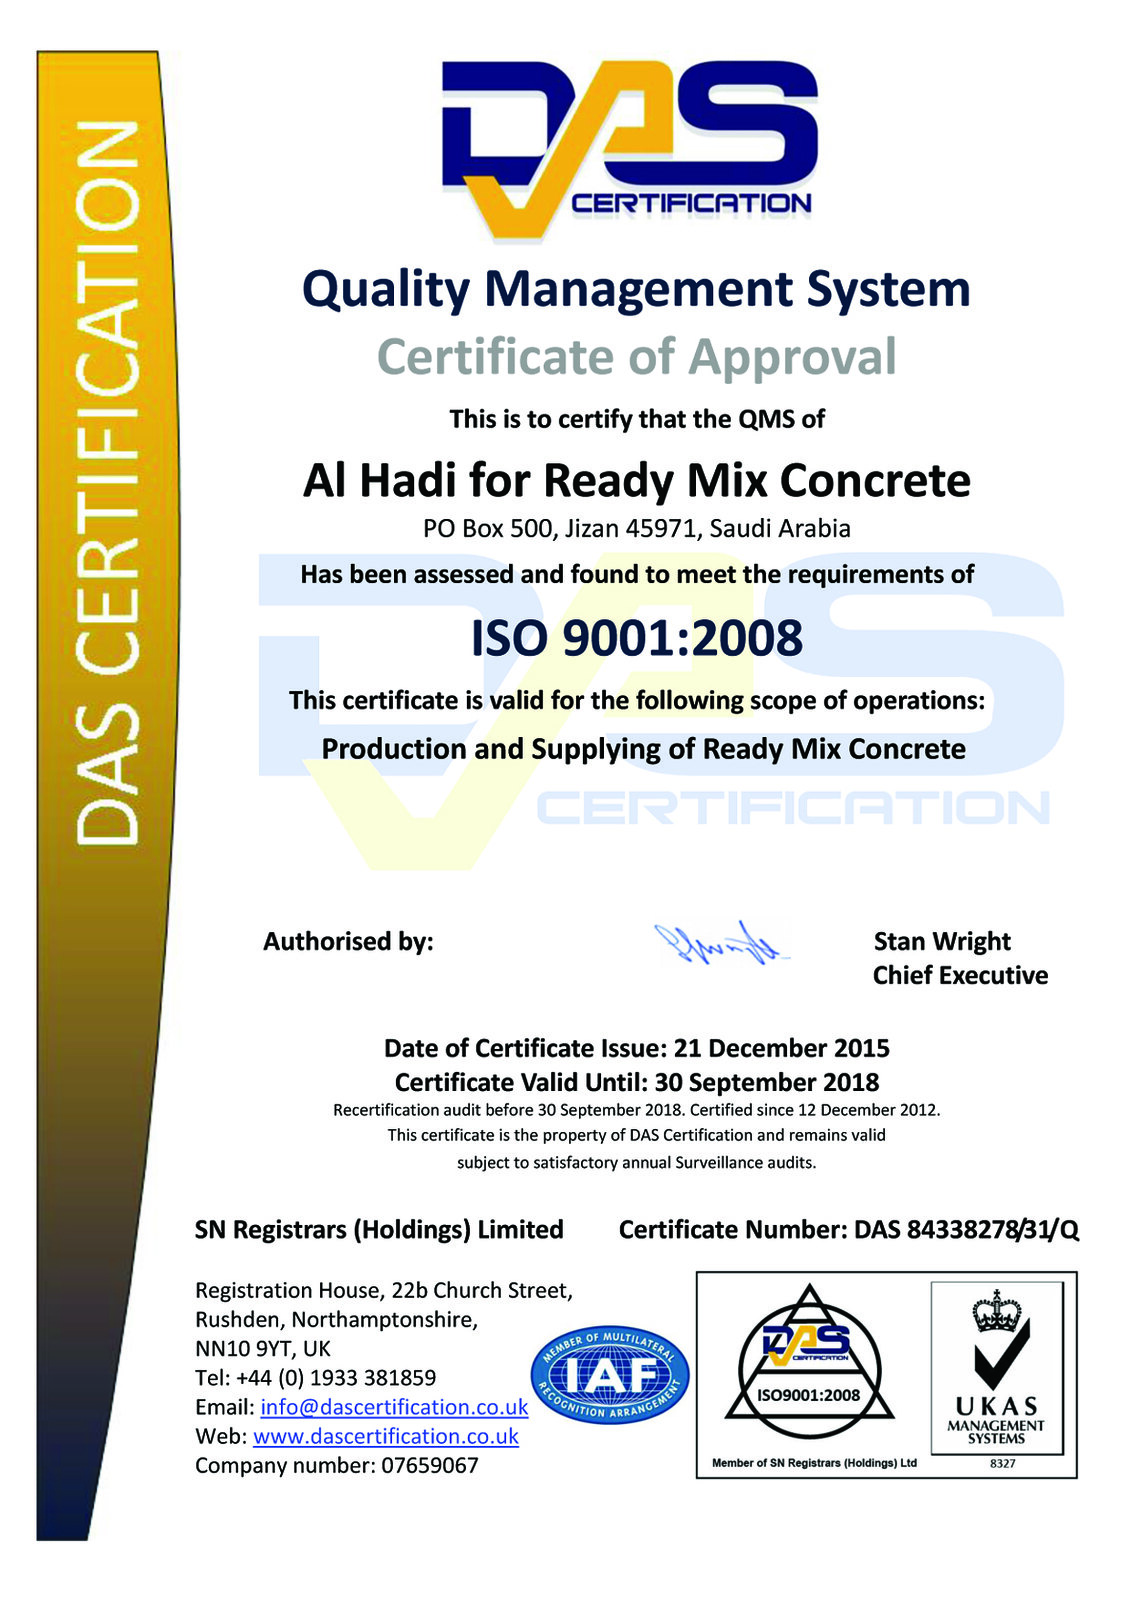 Certificate - Al Hadi for Ready Mix Concrete - DAS 84338278-31-Q-15